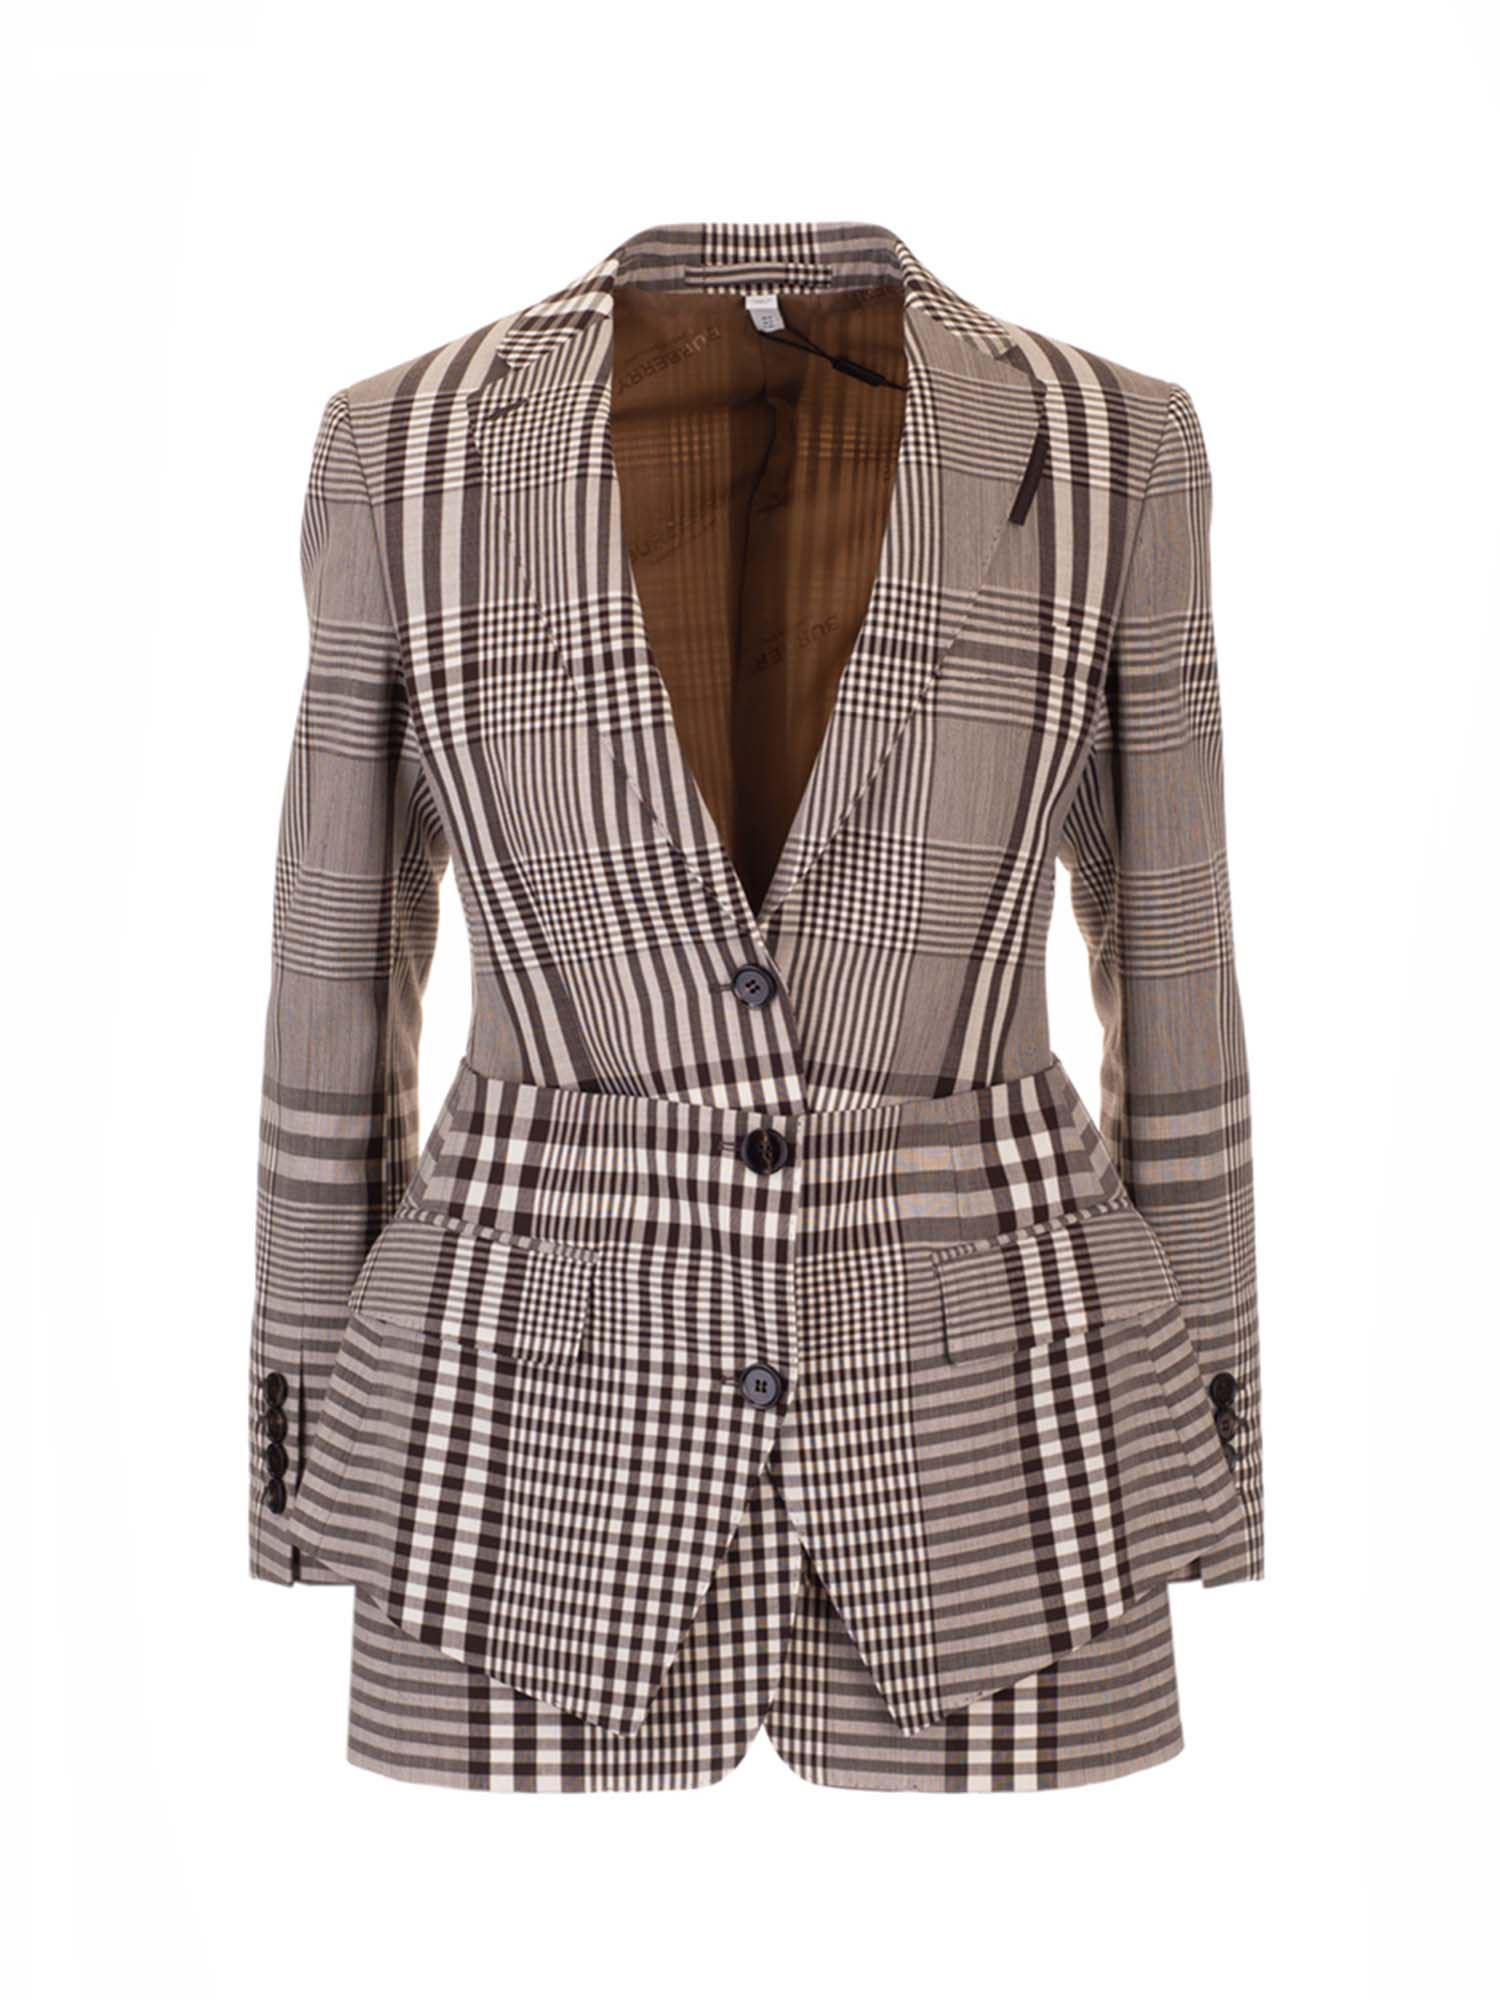 Burberry BASQUE DETAILED TAILORED JACKET IN BROWN